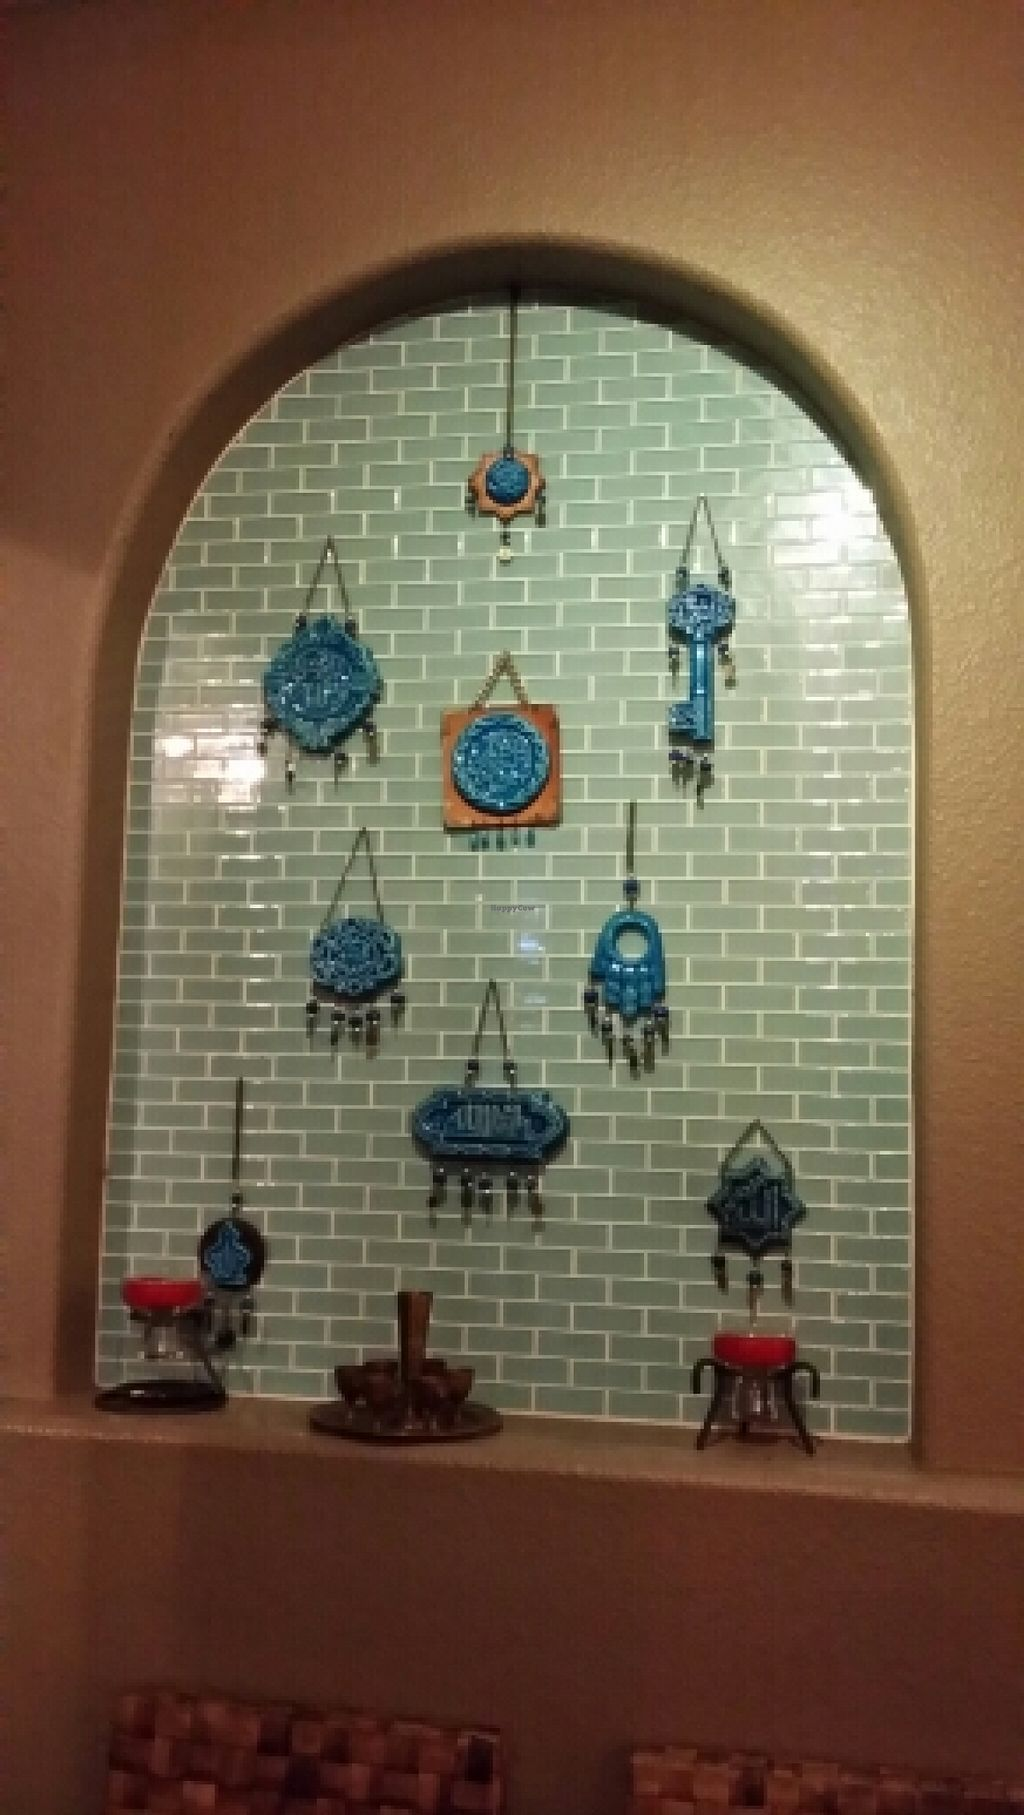 """Photo of East West Cafe  by <a href=""""/members/profile/catbone"""">catbone</a> <br/>Turquoise Prayer Plaques <br/> February 14, 2016  - <a href='/contact/abuse/image/6597/136357'>Report</a>"""